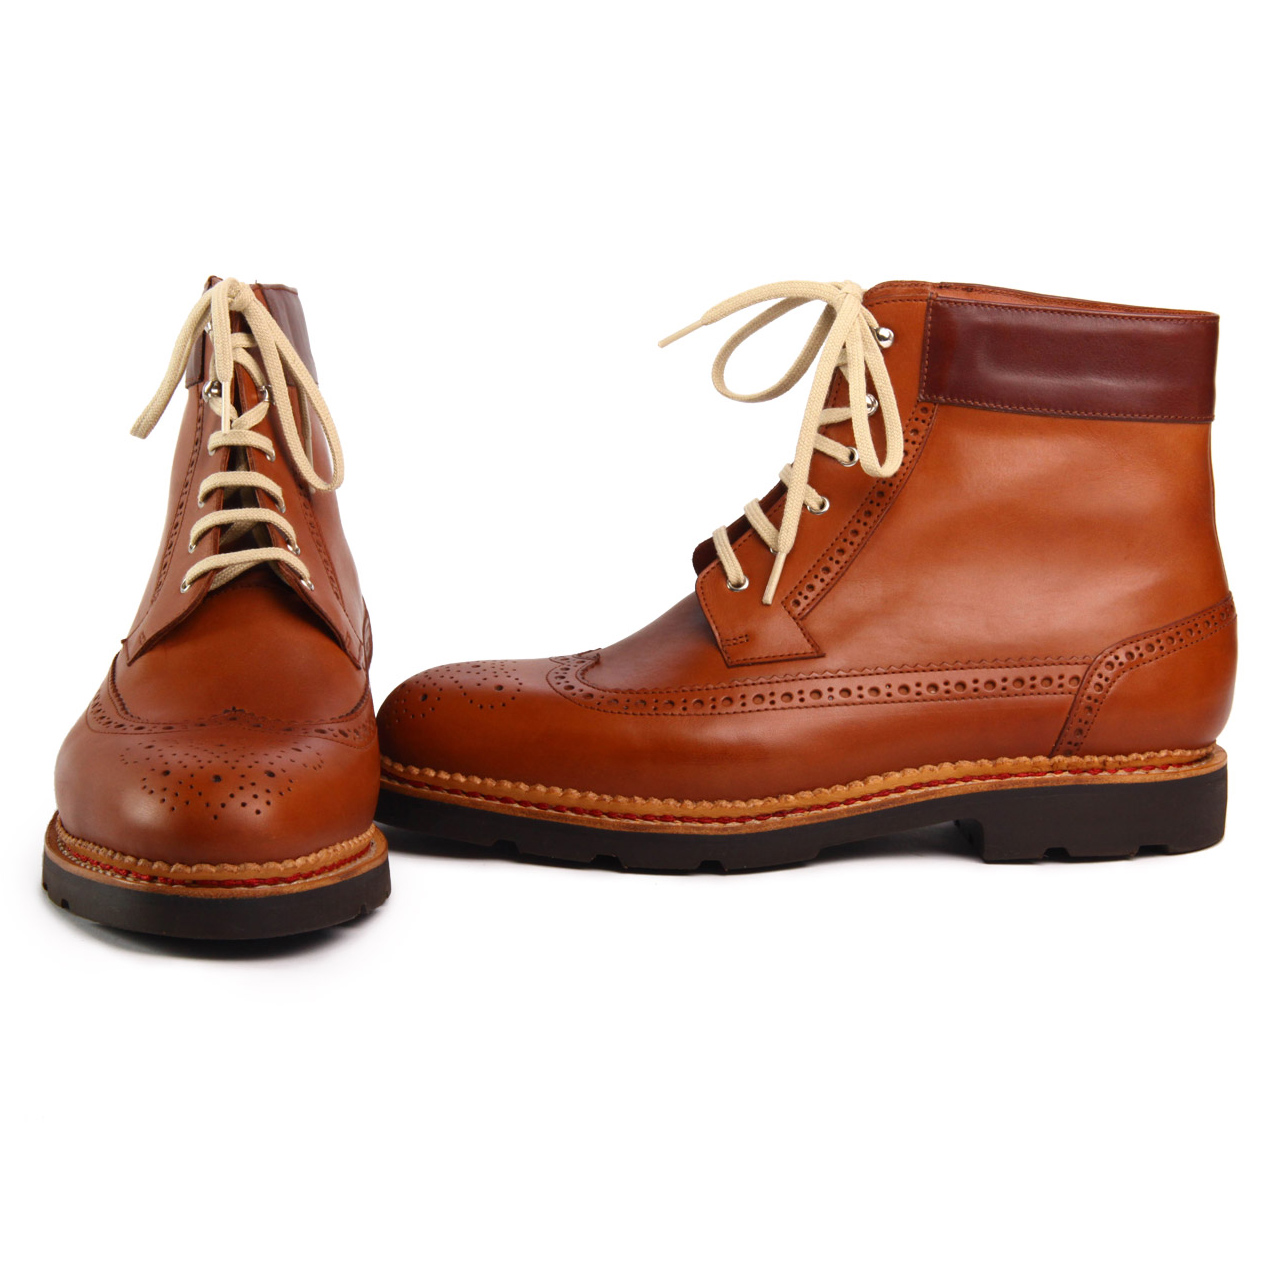 Jacques & Demeter - A Cool Take On The Winter Boot